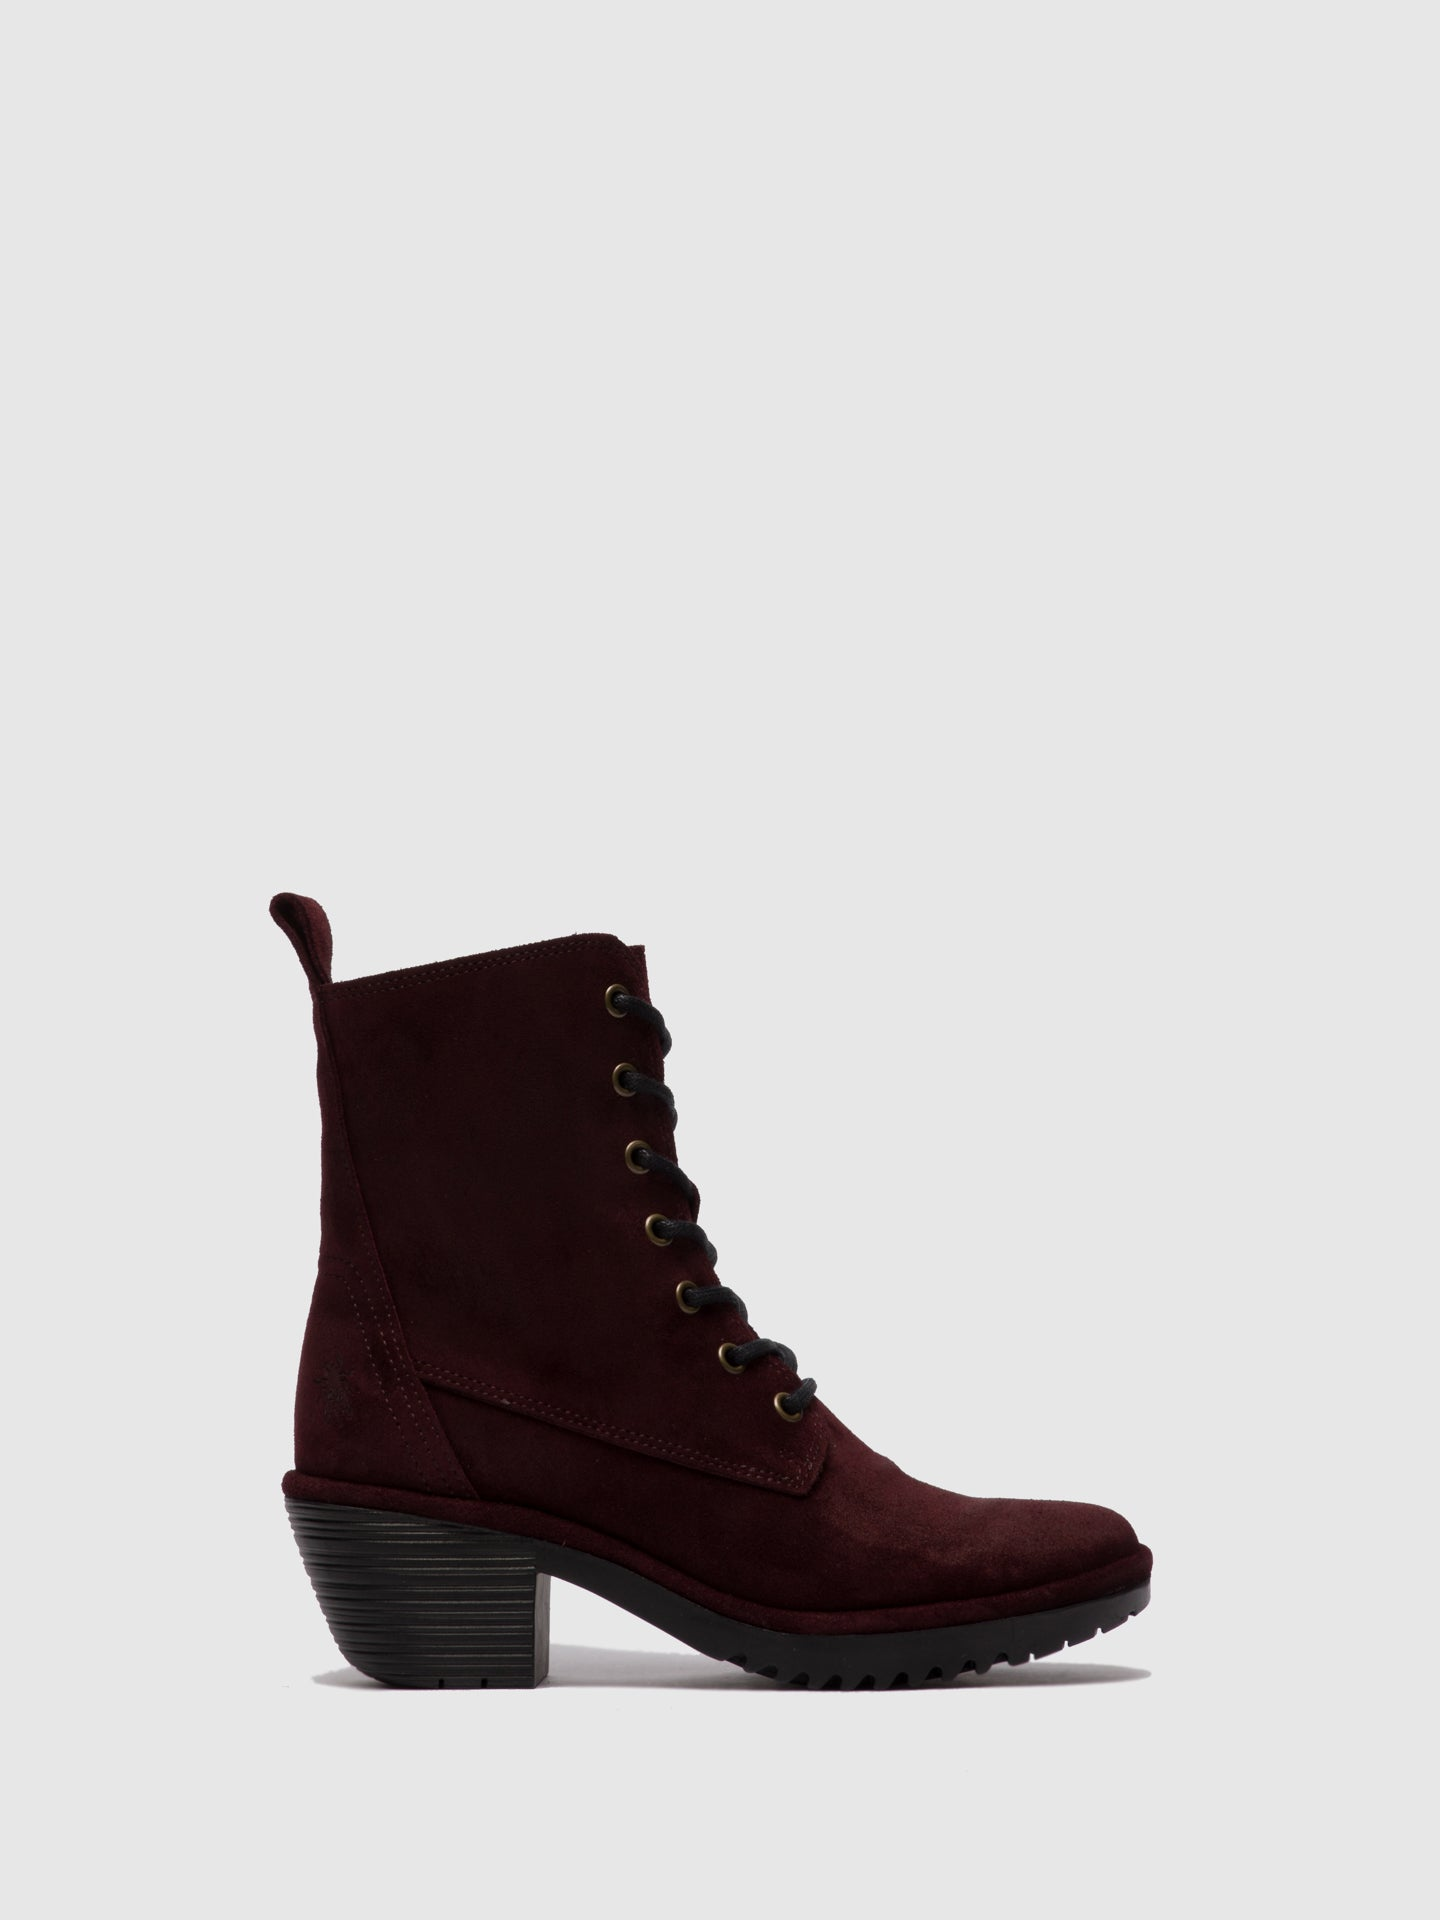 Fly London Lace-up Ankle Boots WEBE244FLY COLUMBIA WINE